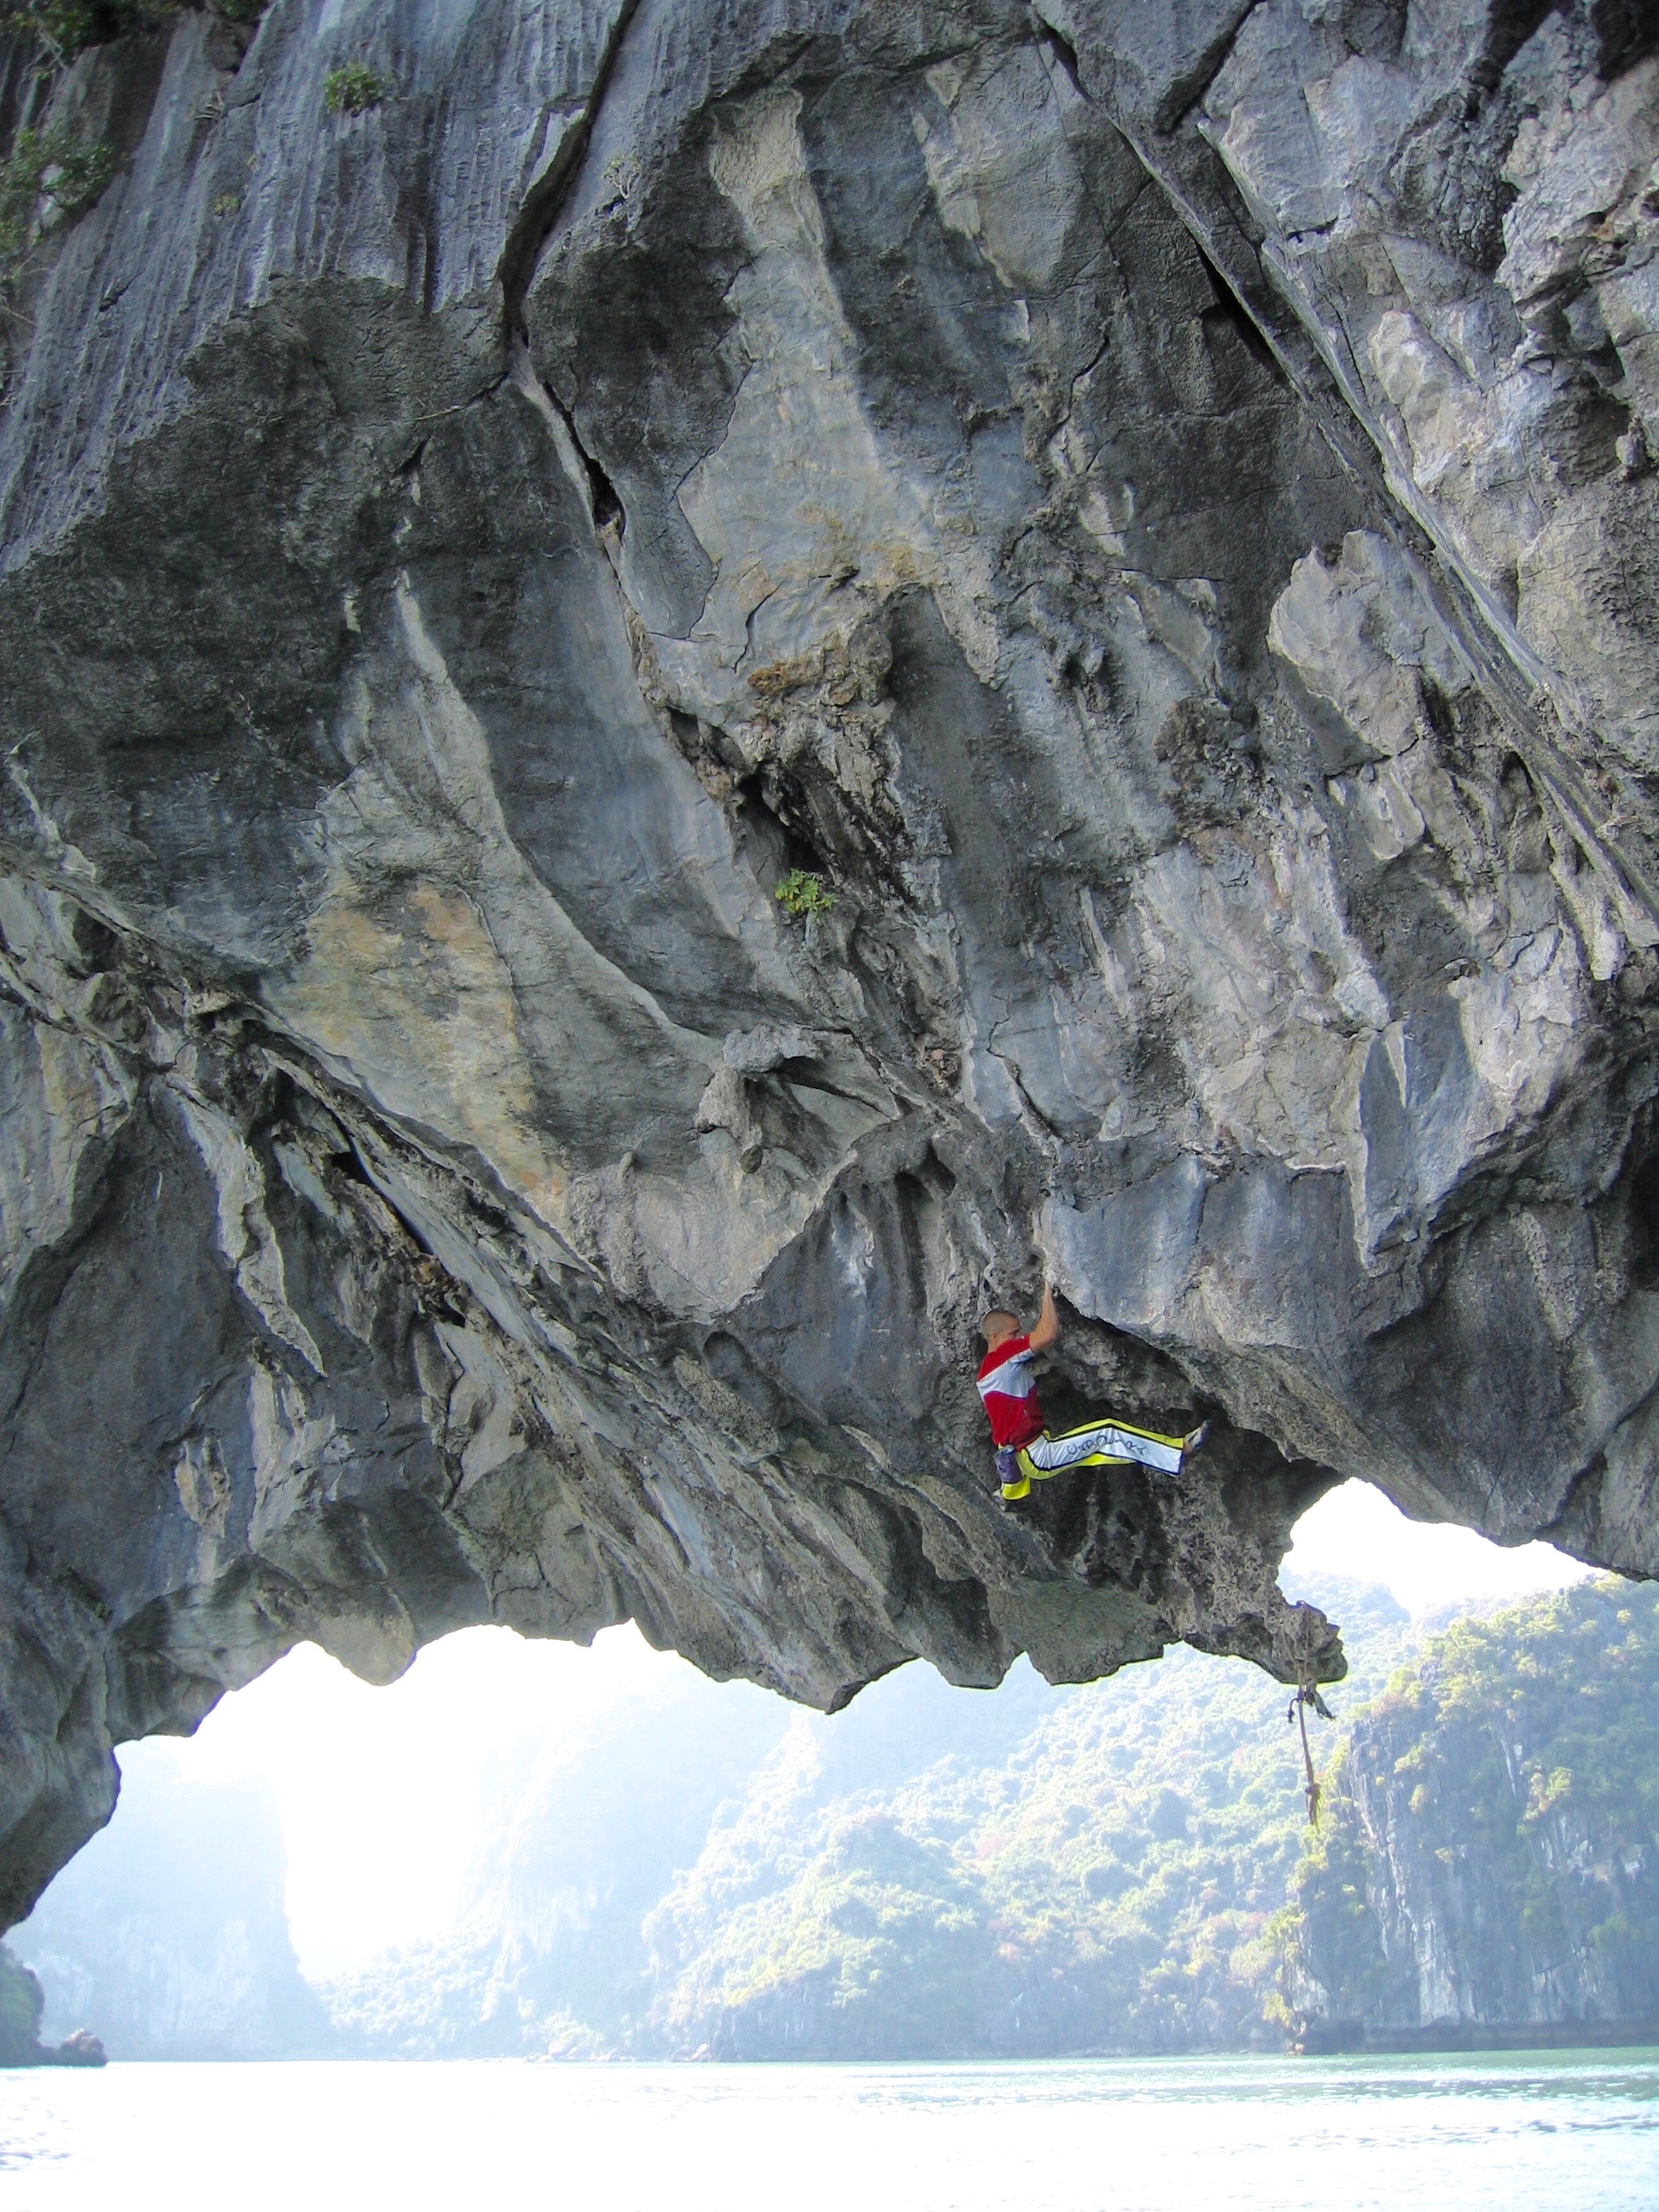 Rocking the Cat Ba 7b+. Yenngua. First ascent in 2003.  Photo: Gresham collection.